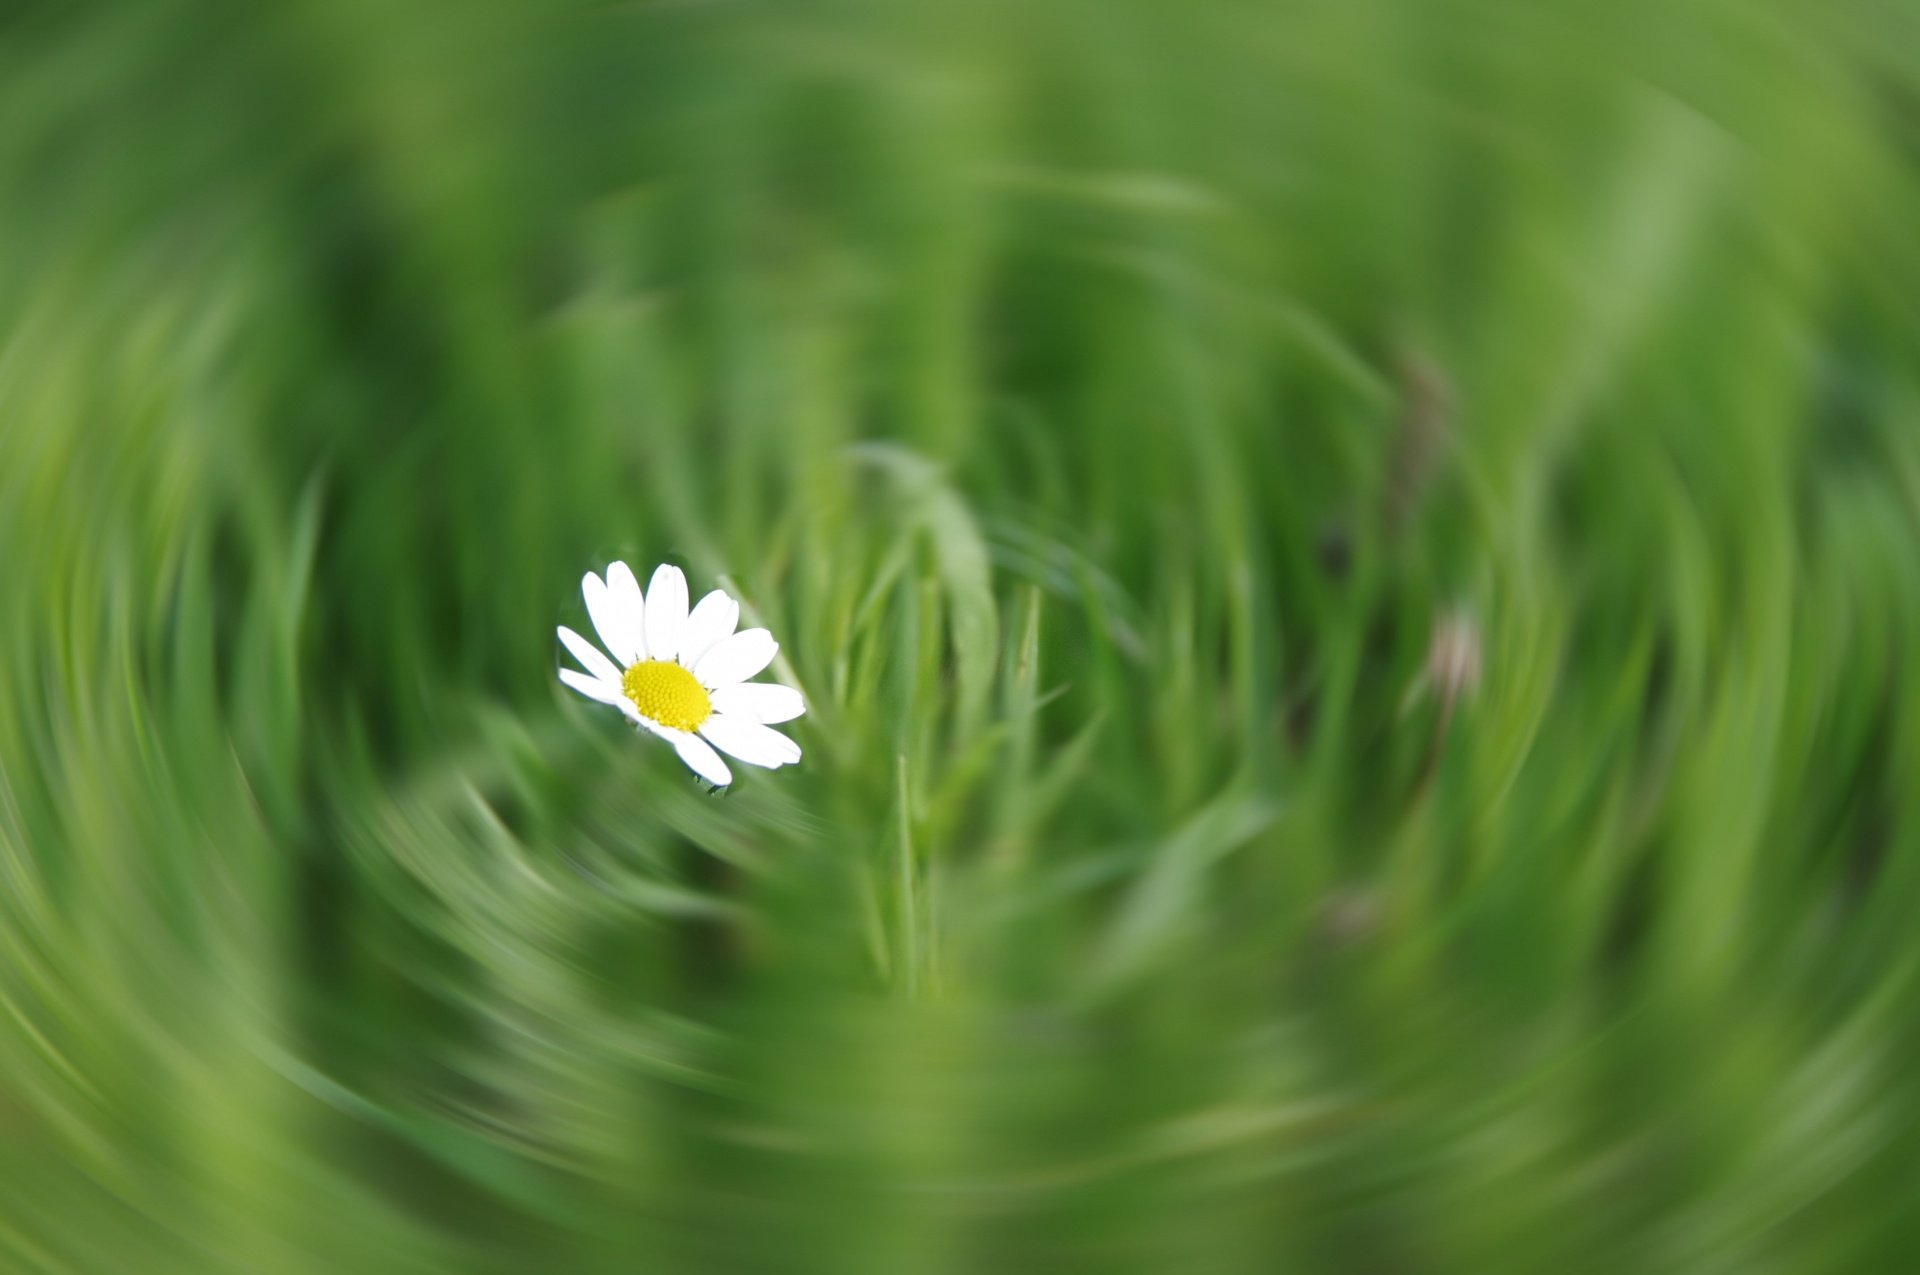 Whiteflowerssmallgrassmotionnbspblur free photo from needpix whiteflowerssmallgrassmotionnbspblurmovementdesign mightylinksfo